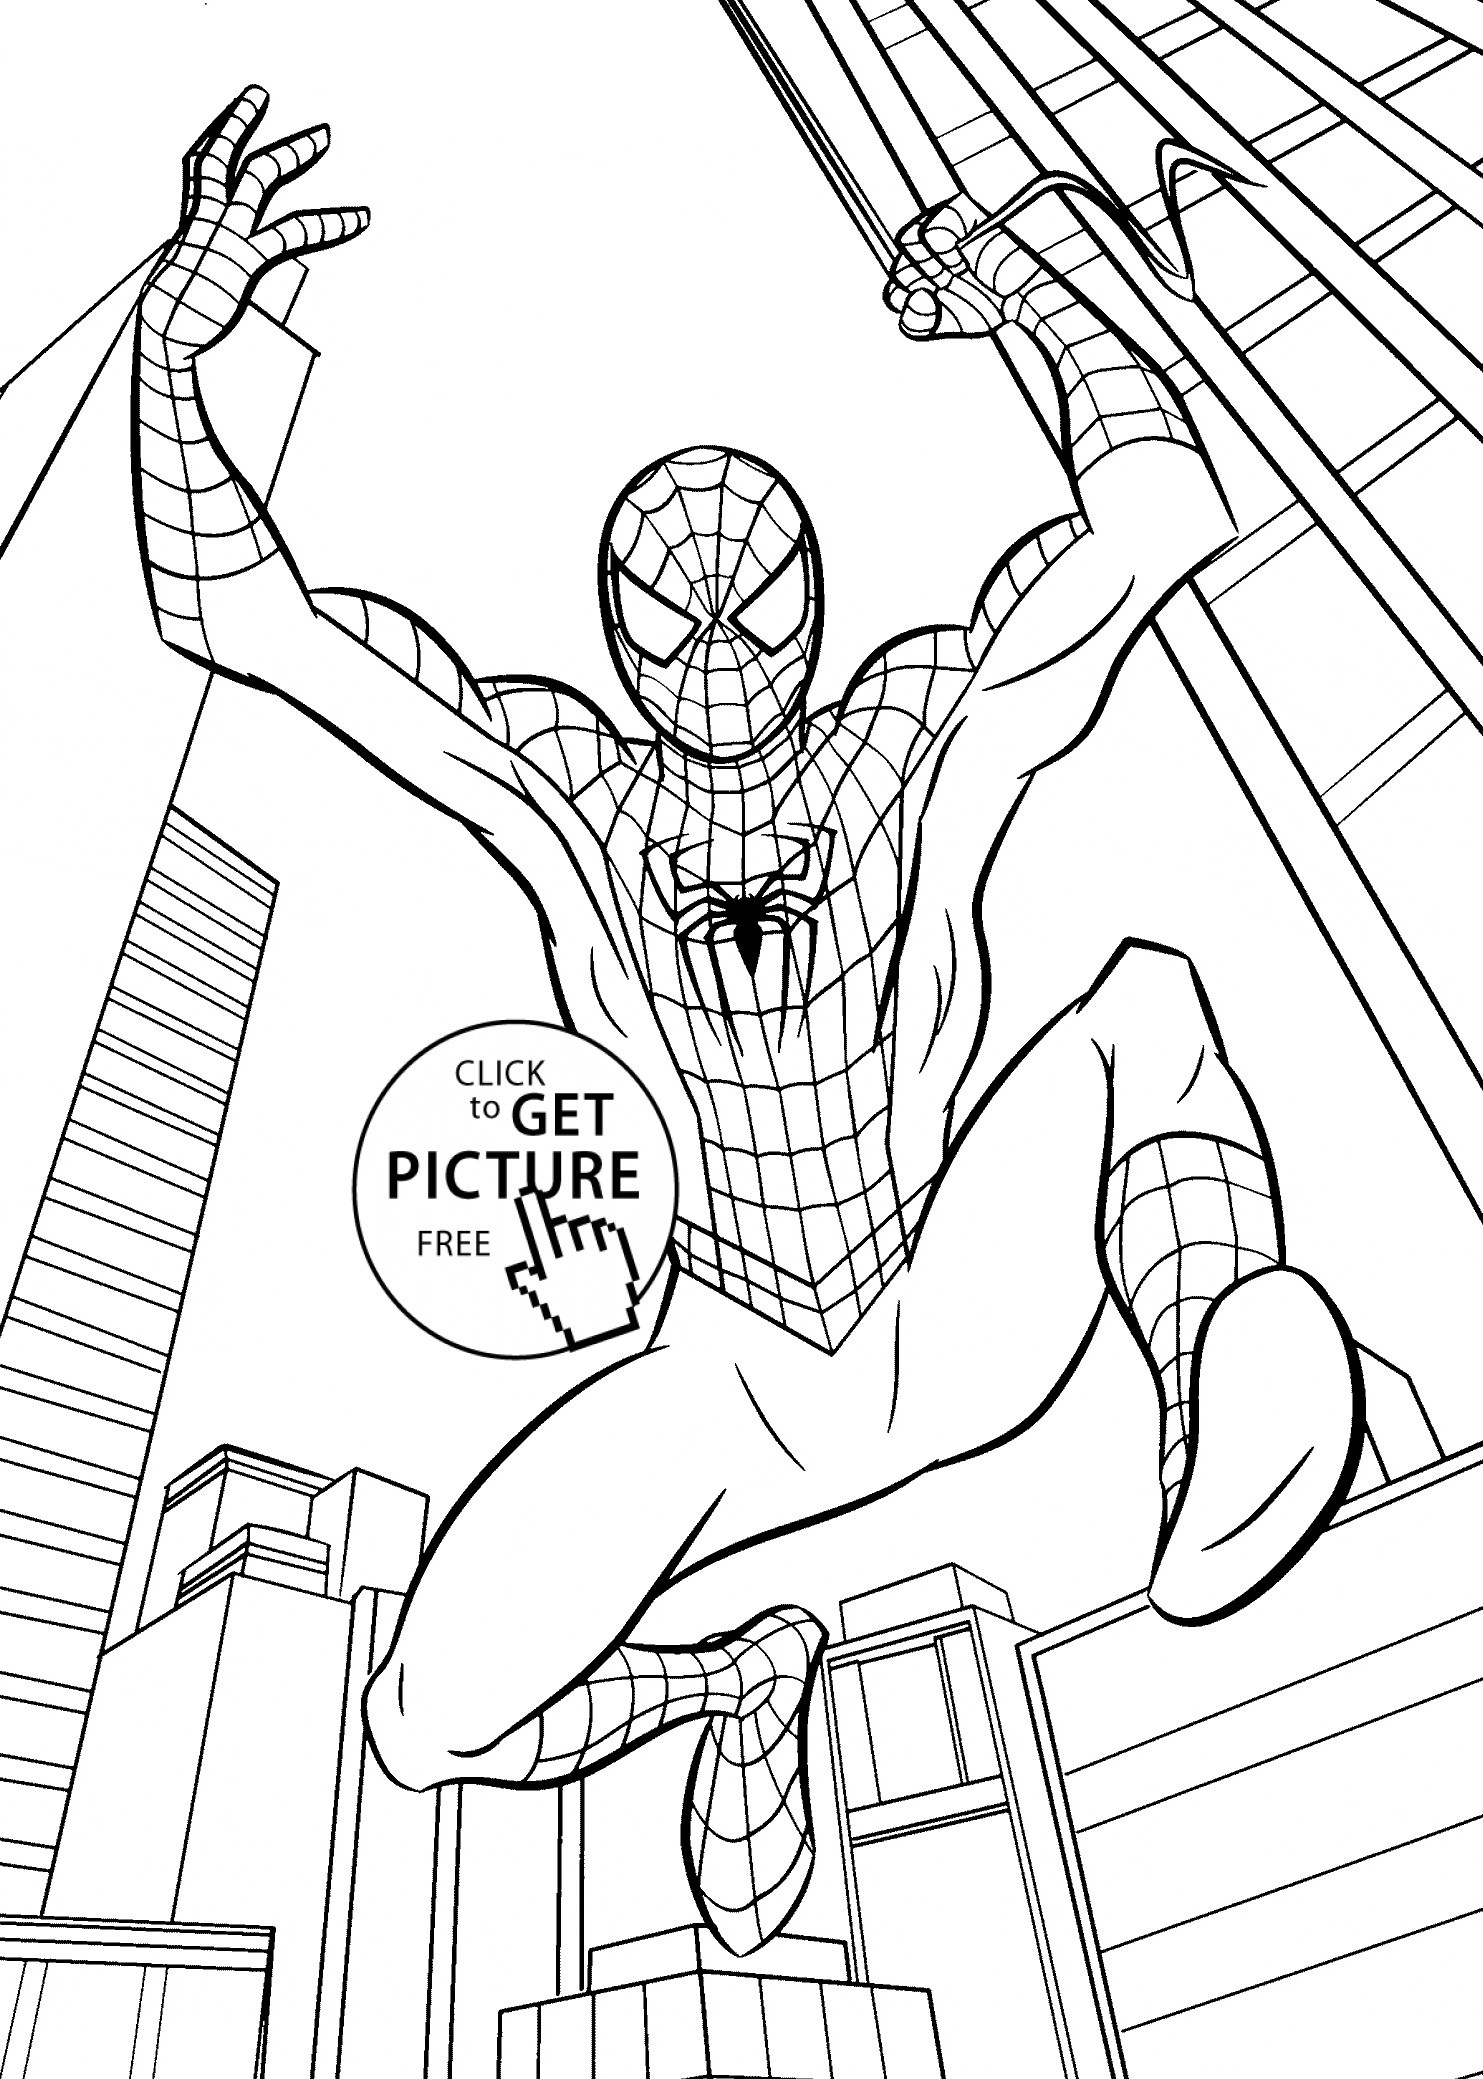 Easy Spiderman Pictures To Draw Free Printable Spiderman Coloring - Free Printable Spiderman Coloring Pages